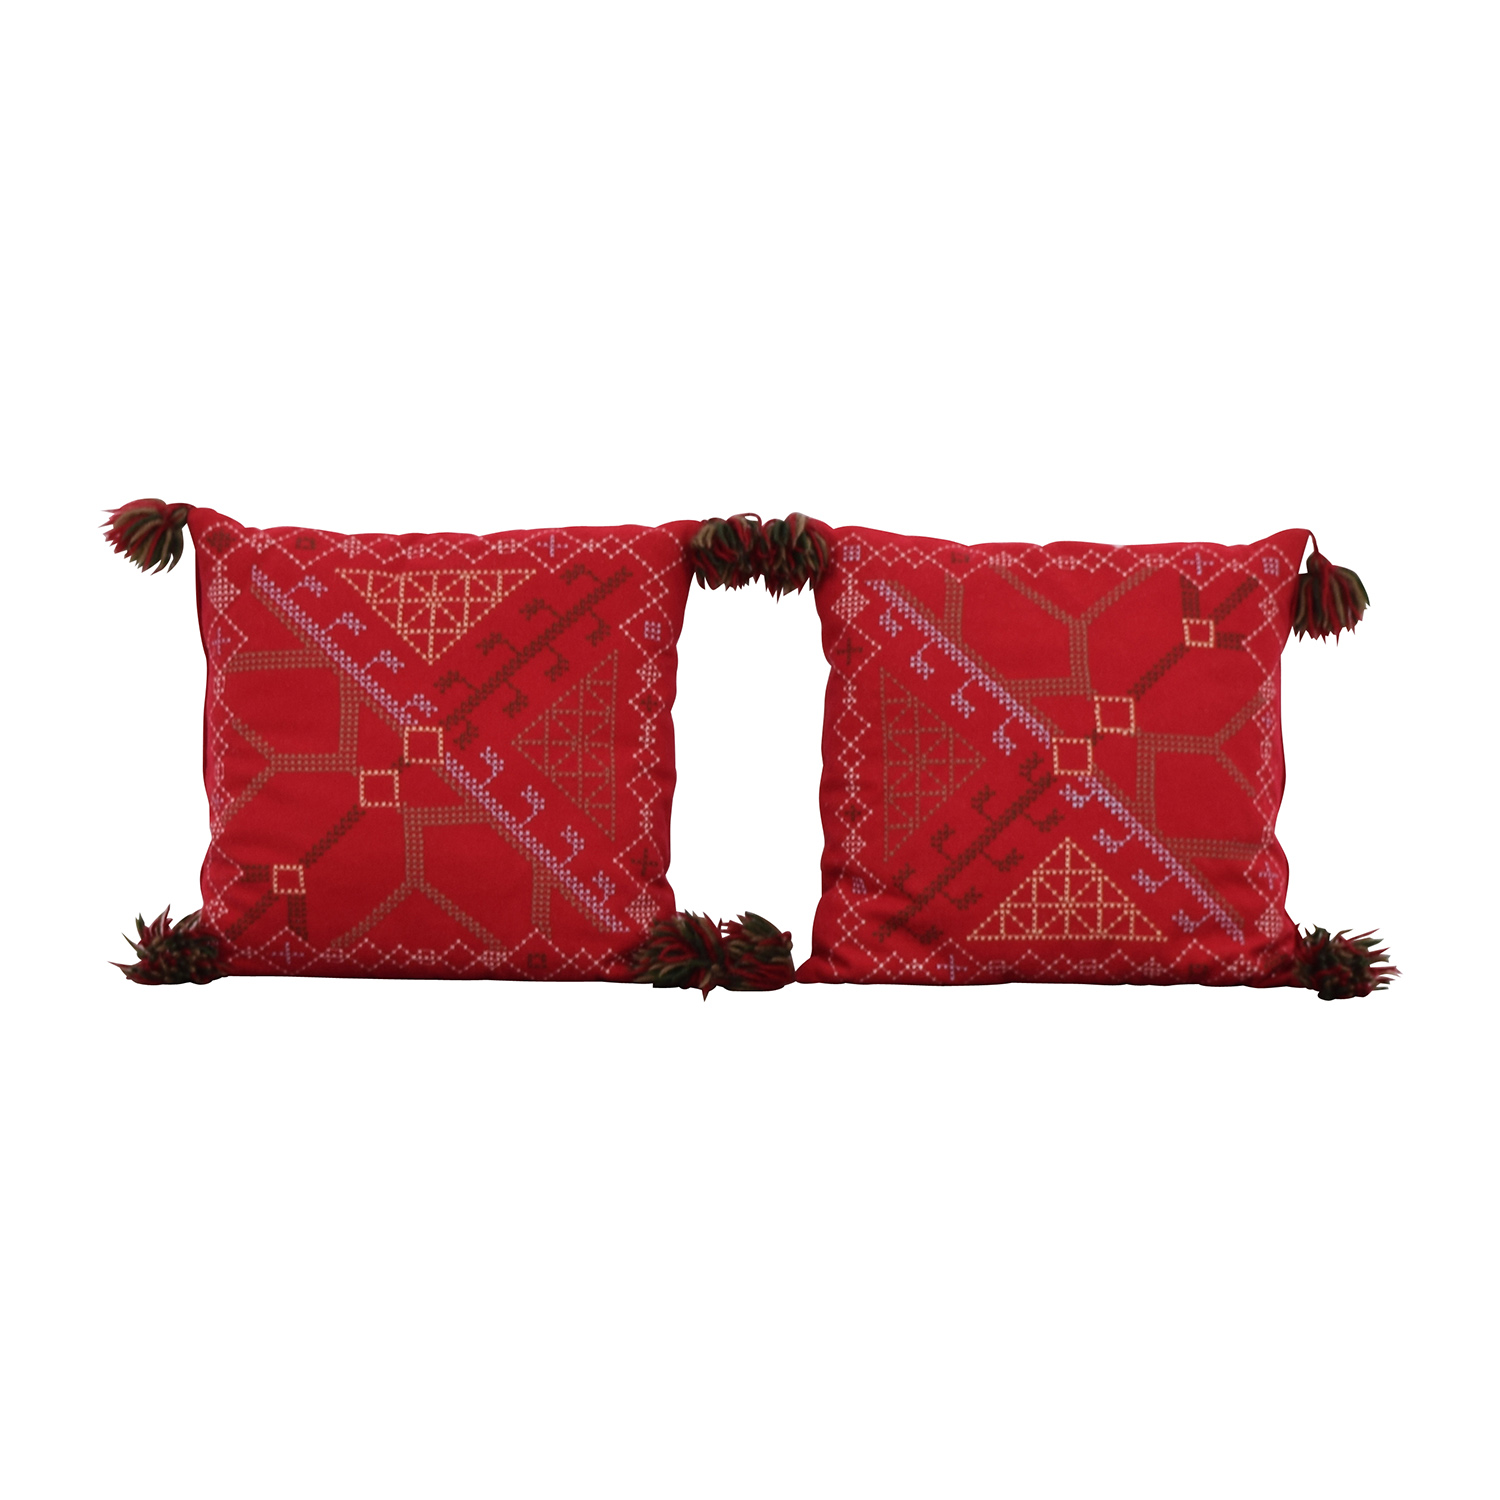 buy Red Decorative Toss Pillows Sofas